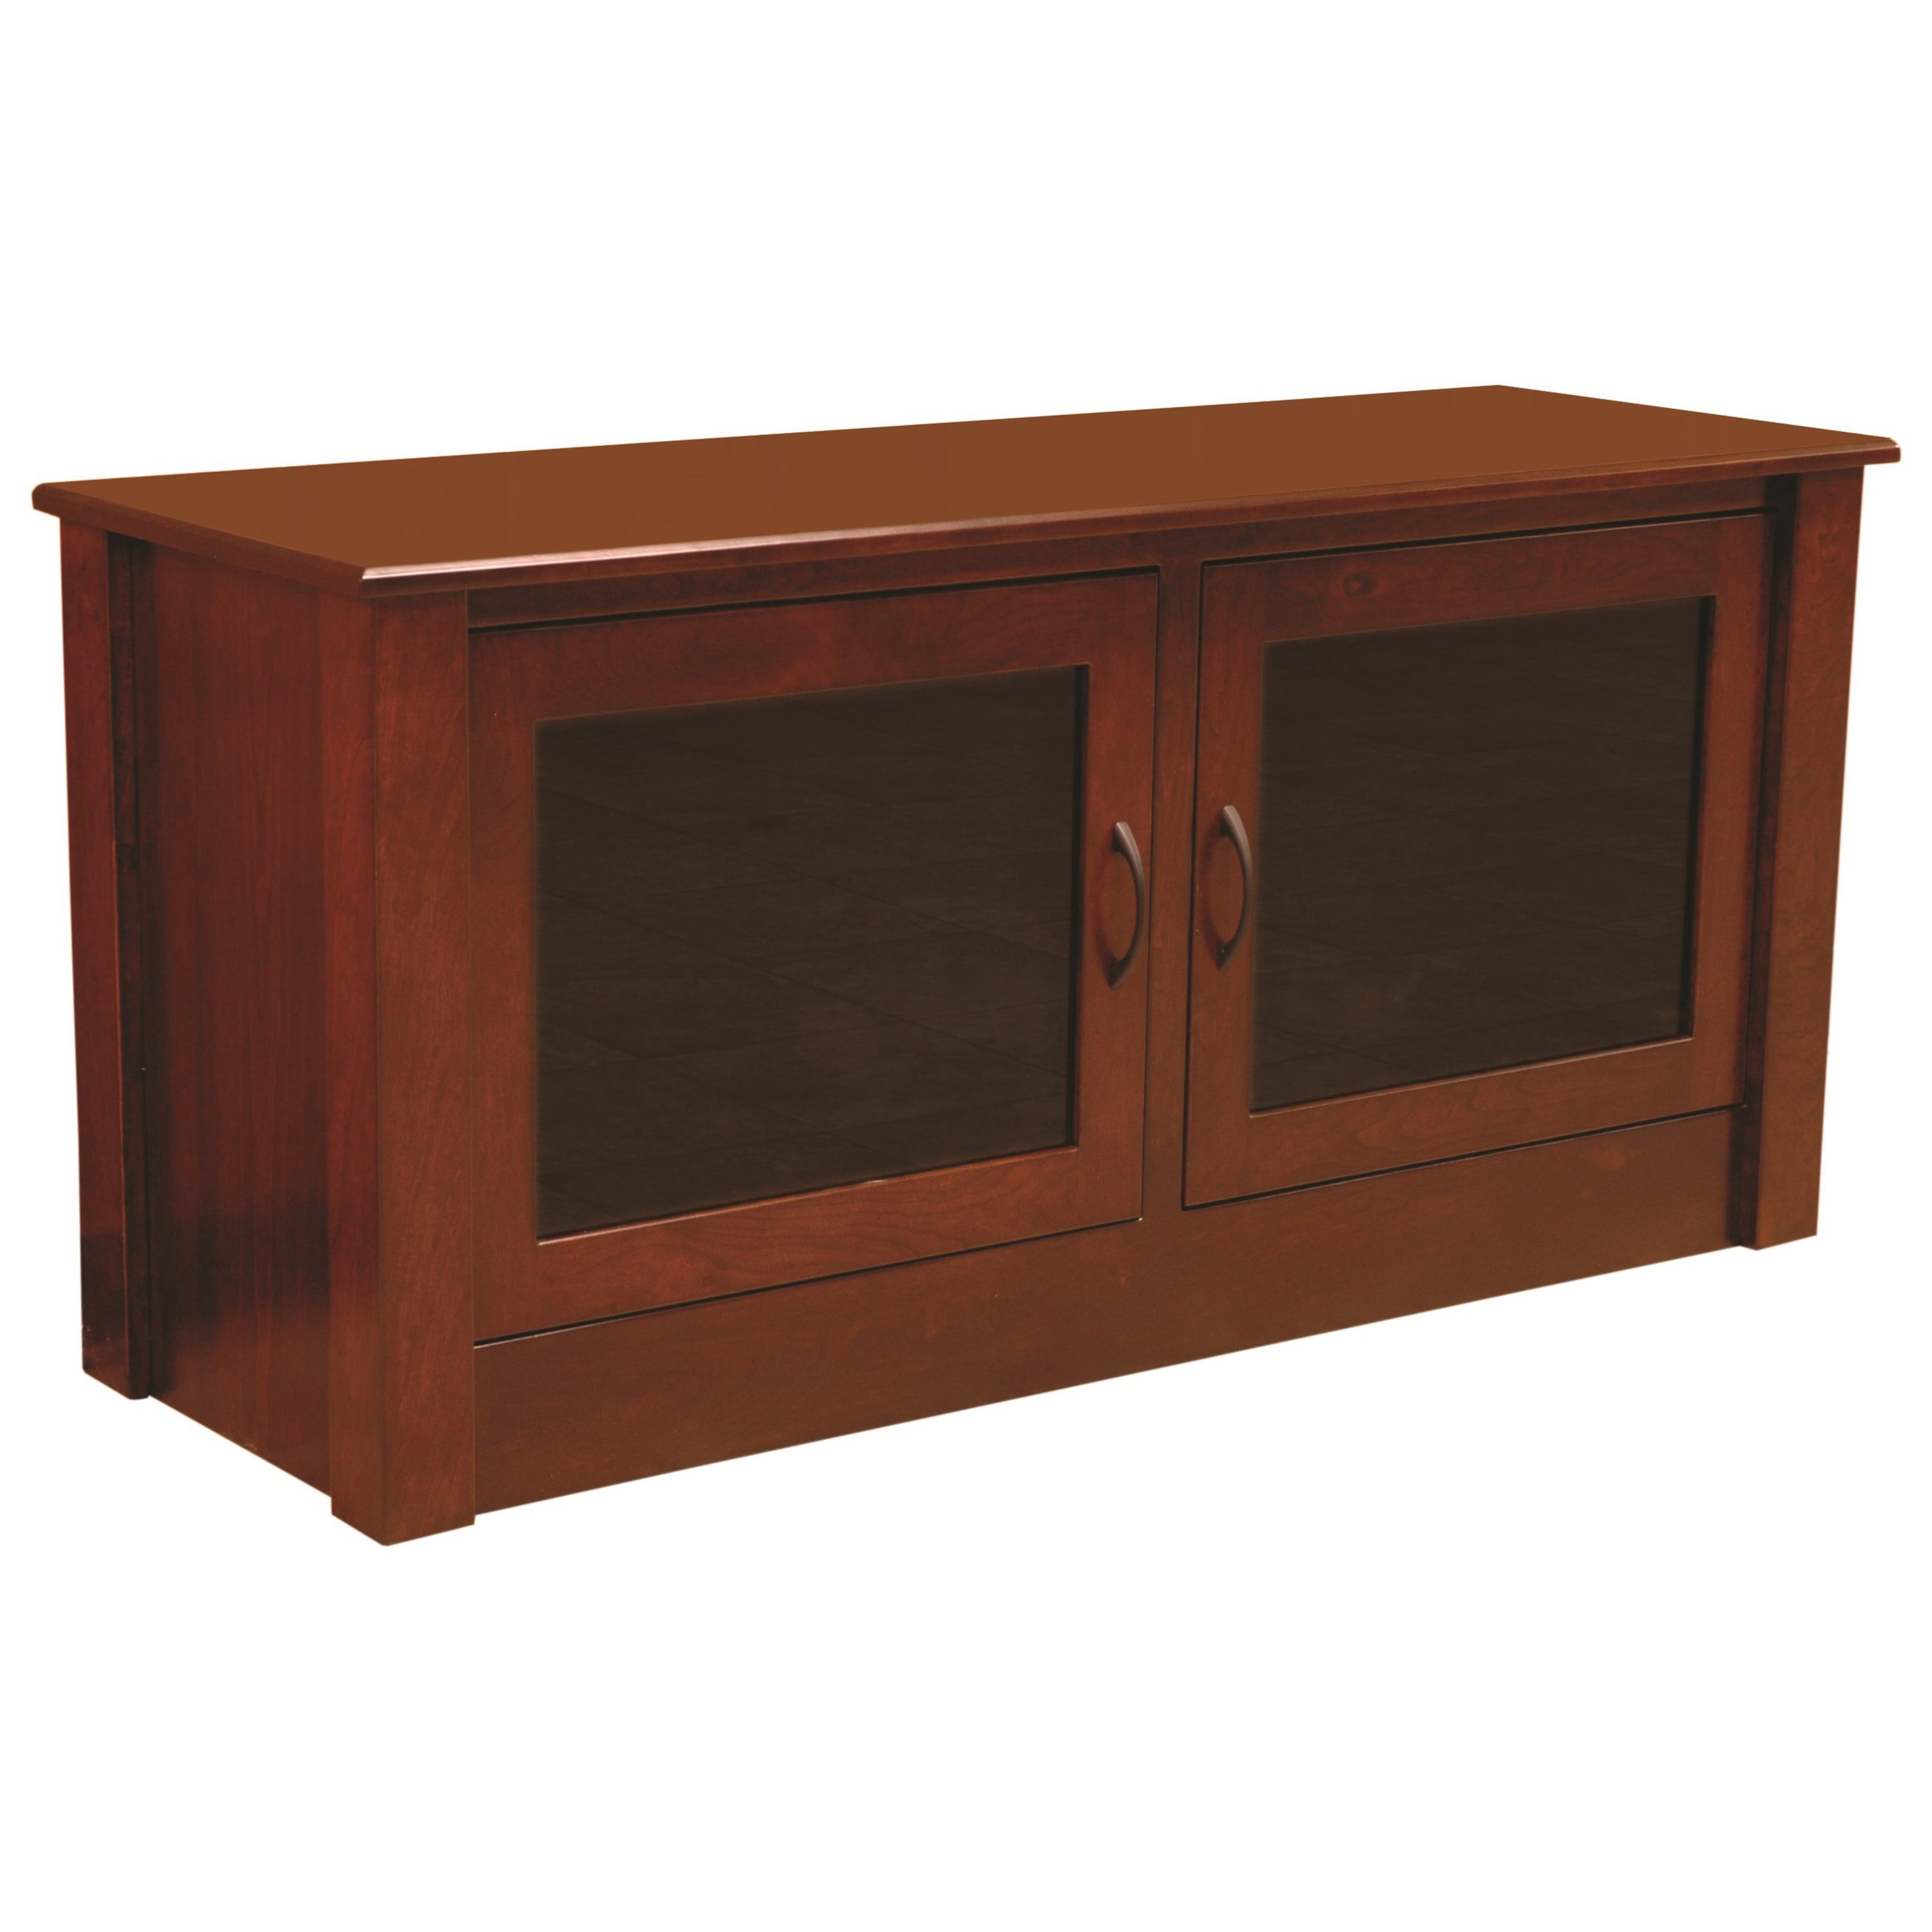 """Entertainment Horizon 54"""" TV Stand by INTEG Wood Products at Saugerties Furniture Mart"""